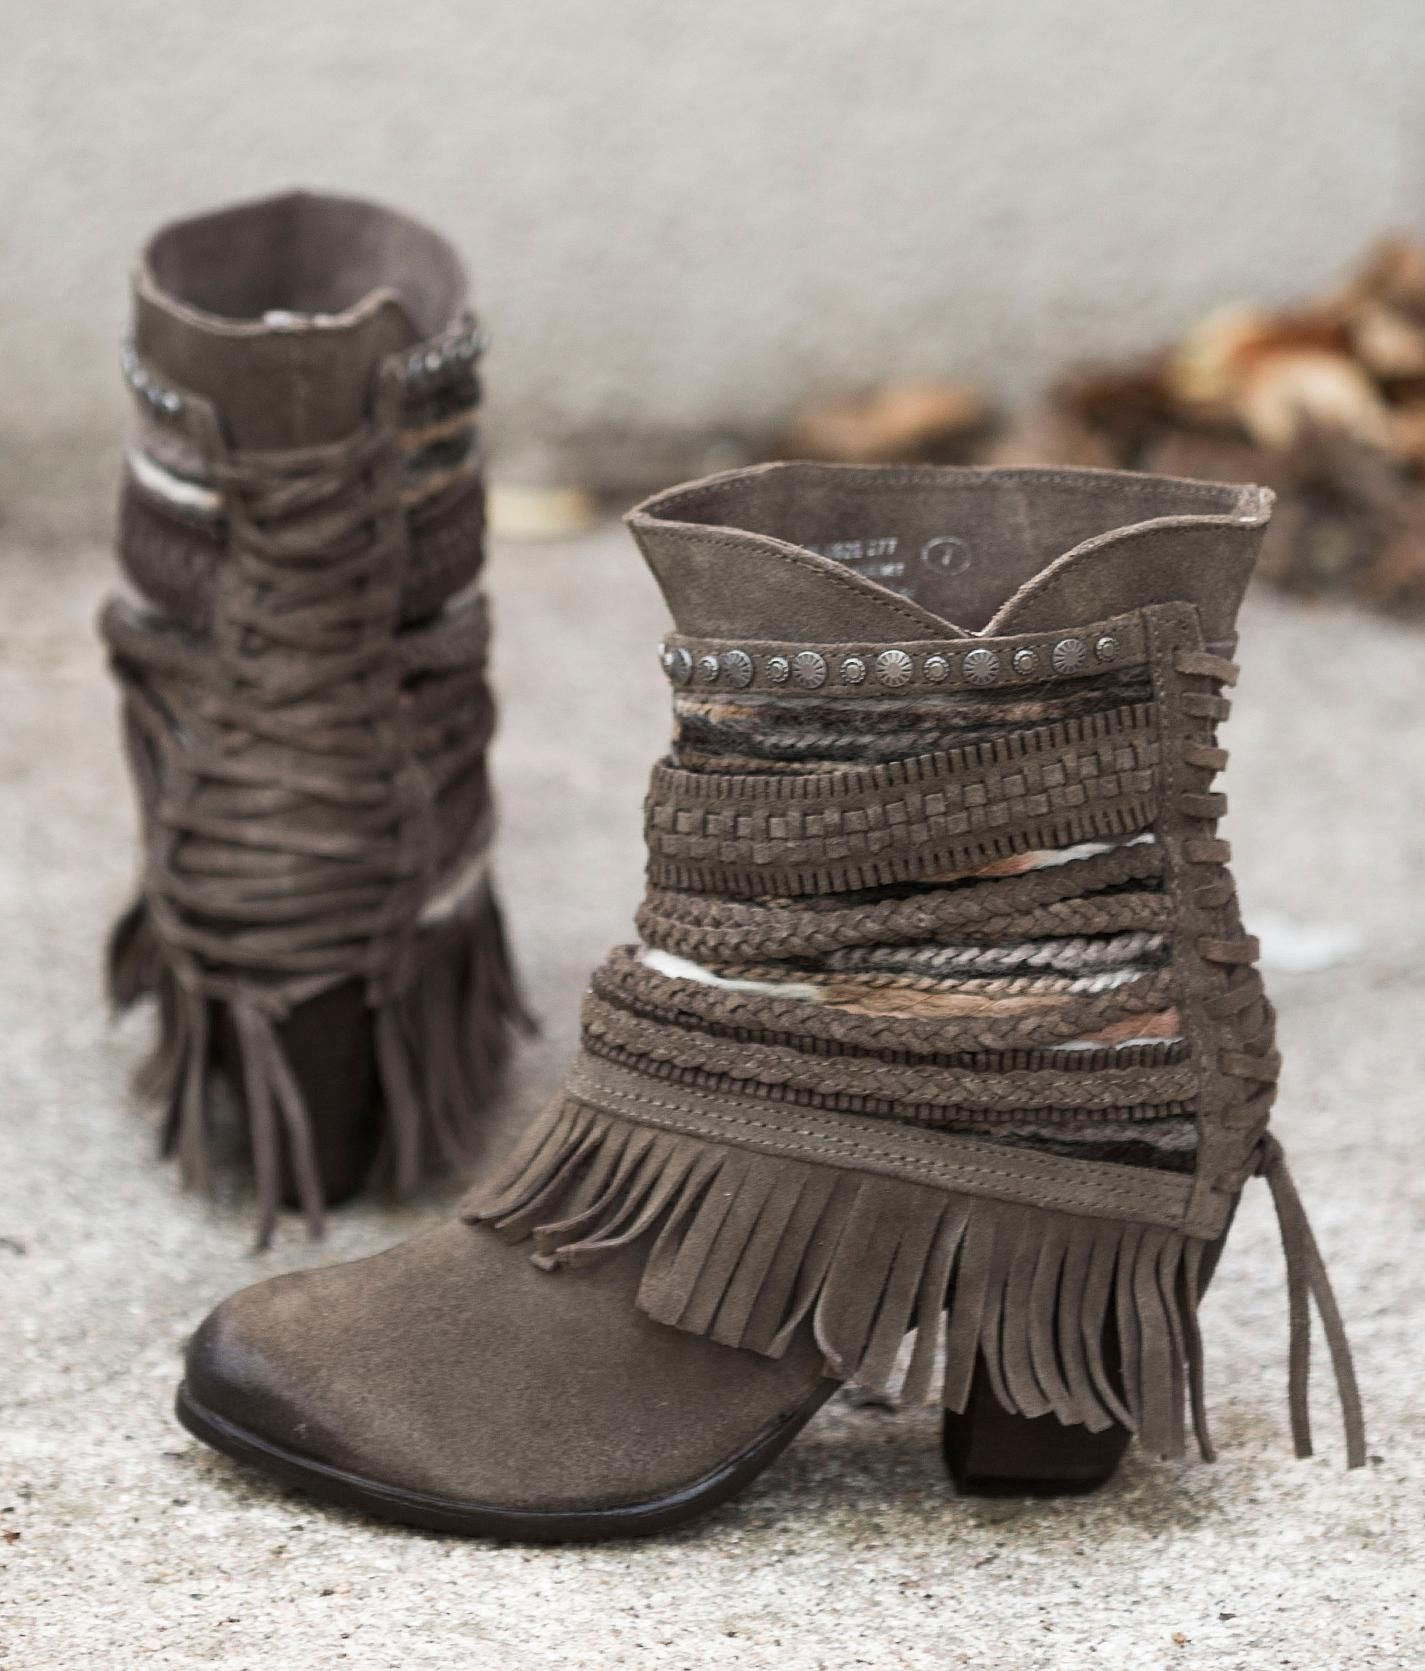 Naughty Monkey Poncho Boot - Women's Shoes in Taupe